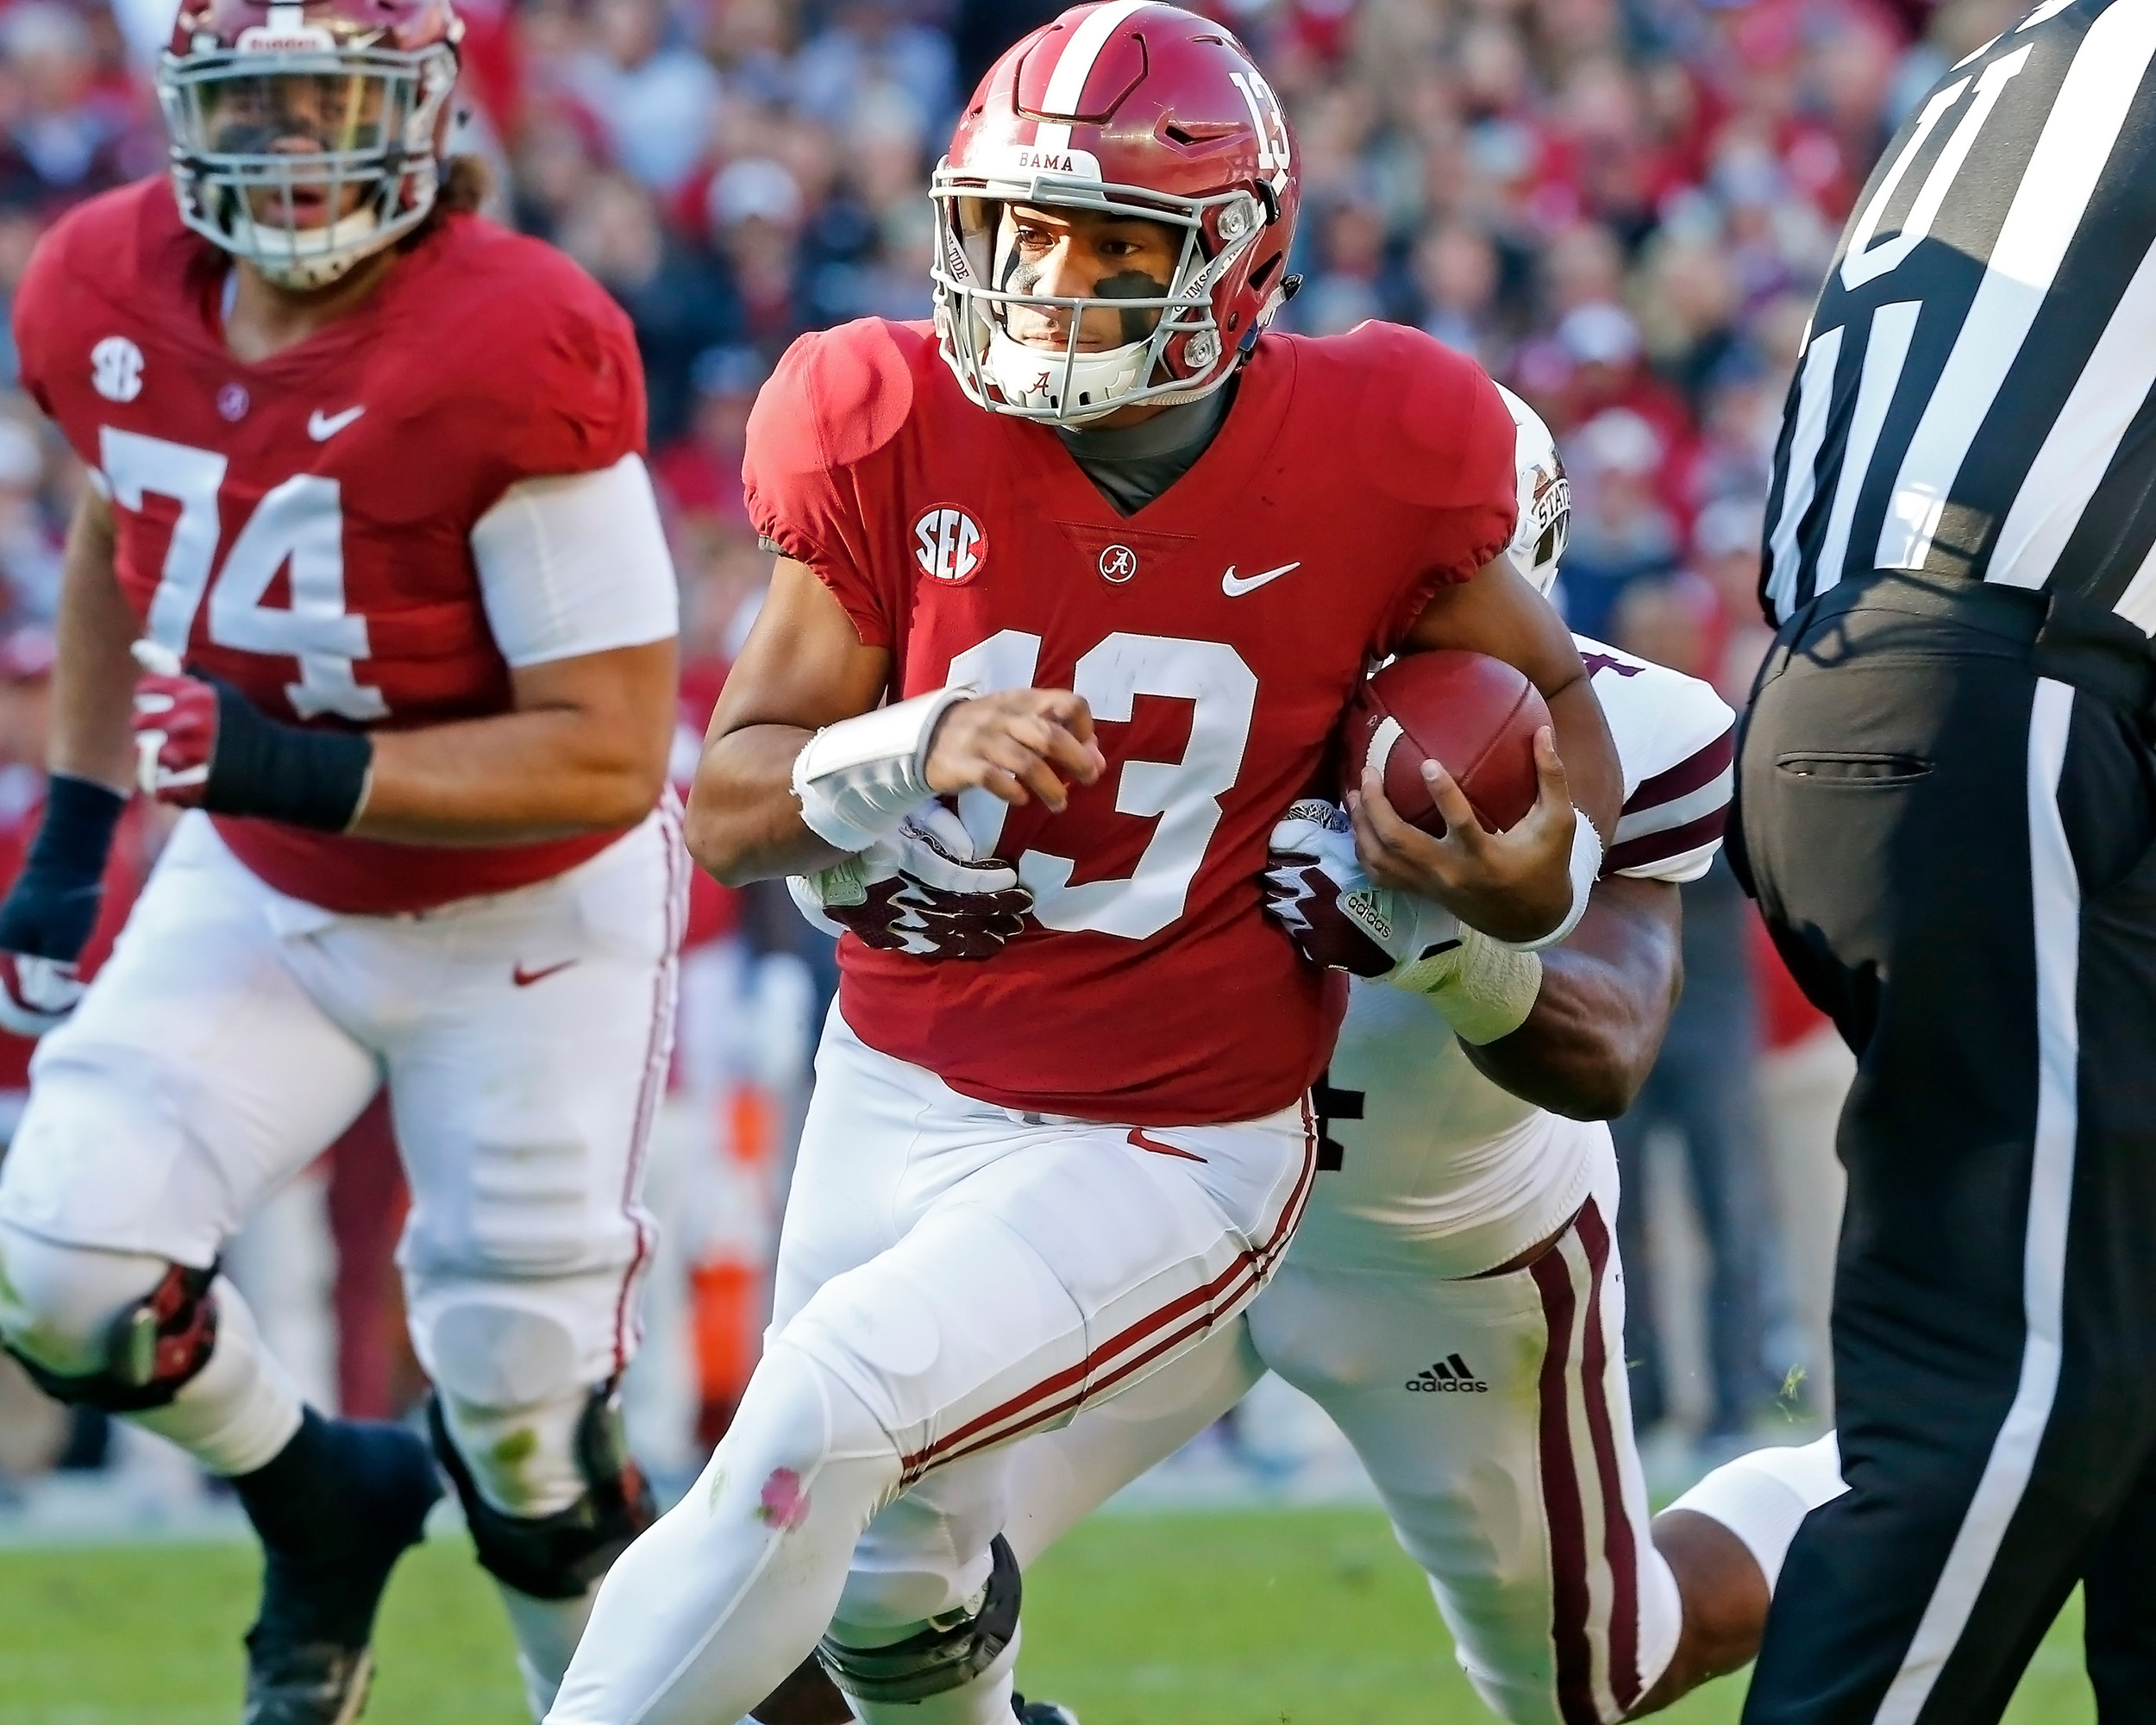 Alabama Crimson Tide quarterback Tua Tagovailoa (13) rushed for a first down during the game between Mississippi State and the University of Alabama at Bryant-Denny Stadium in Tuscaloosa, Al. Credit: Jason Clark / Daily Mountain Eagle